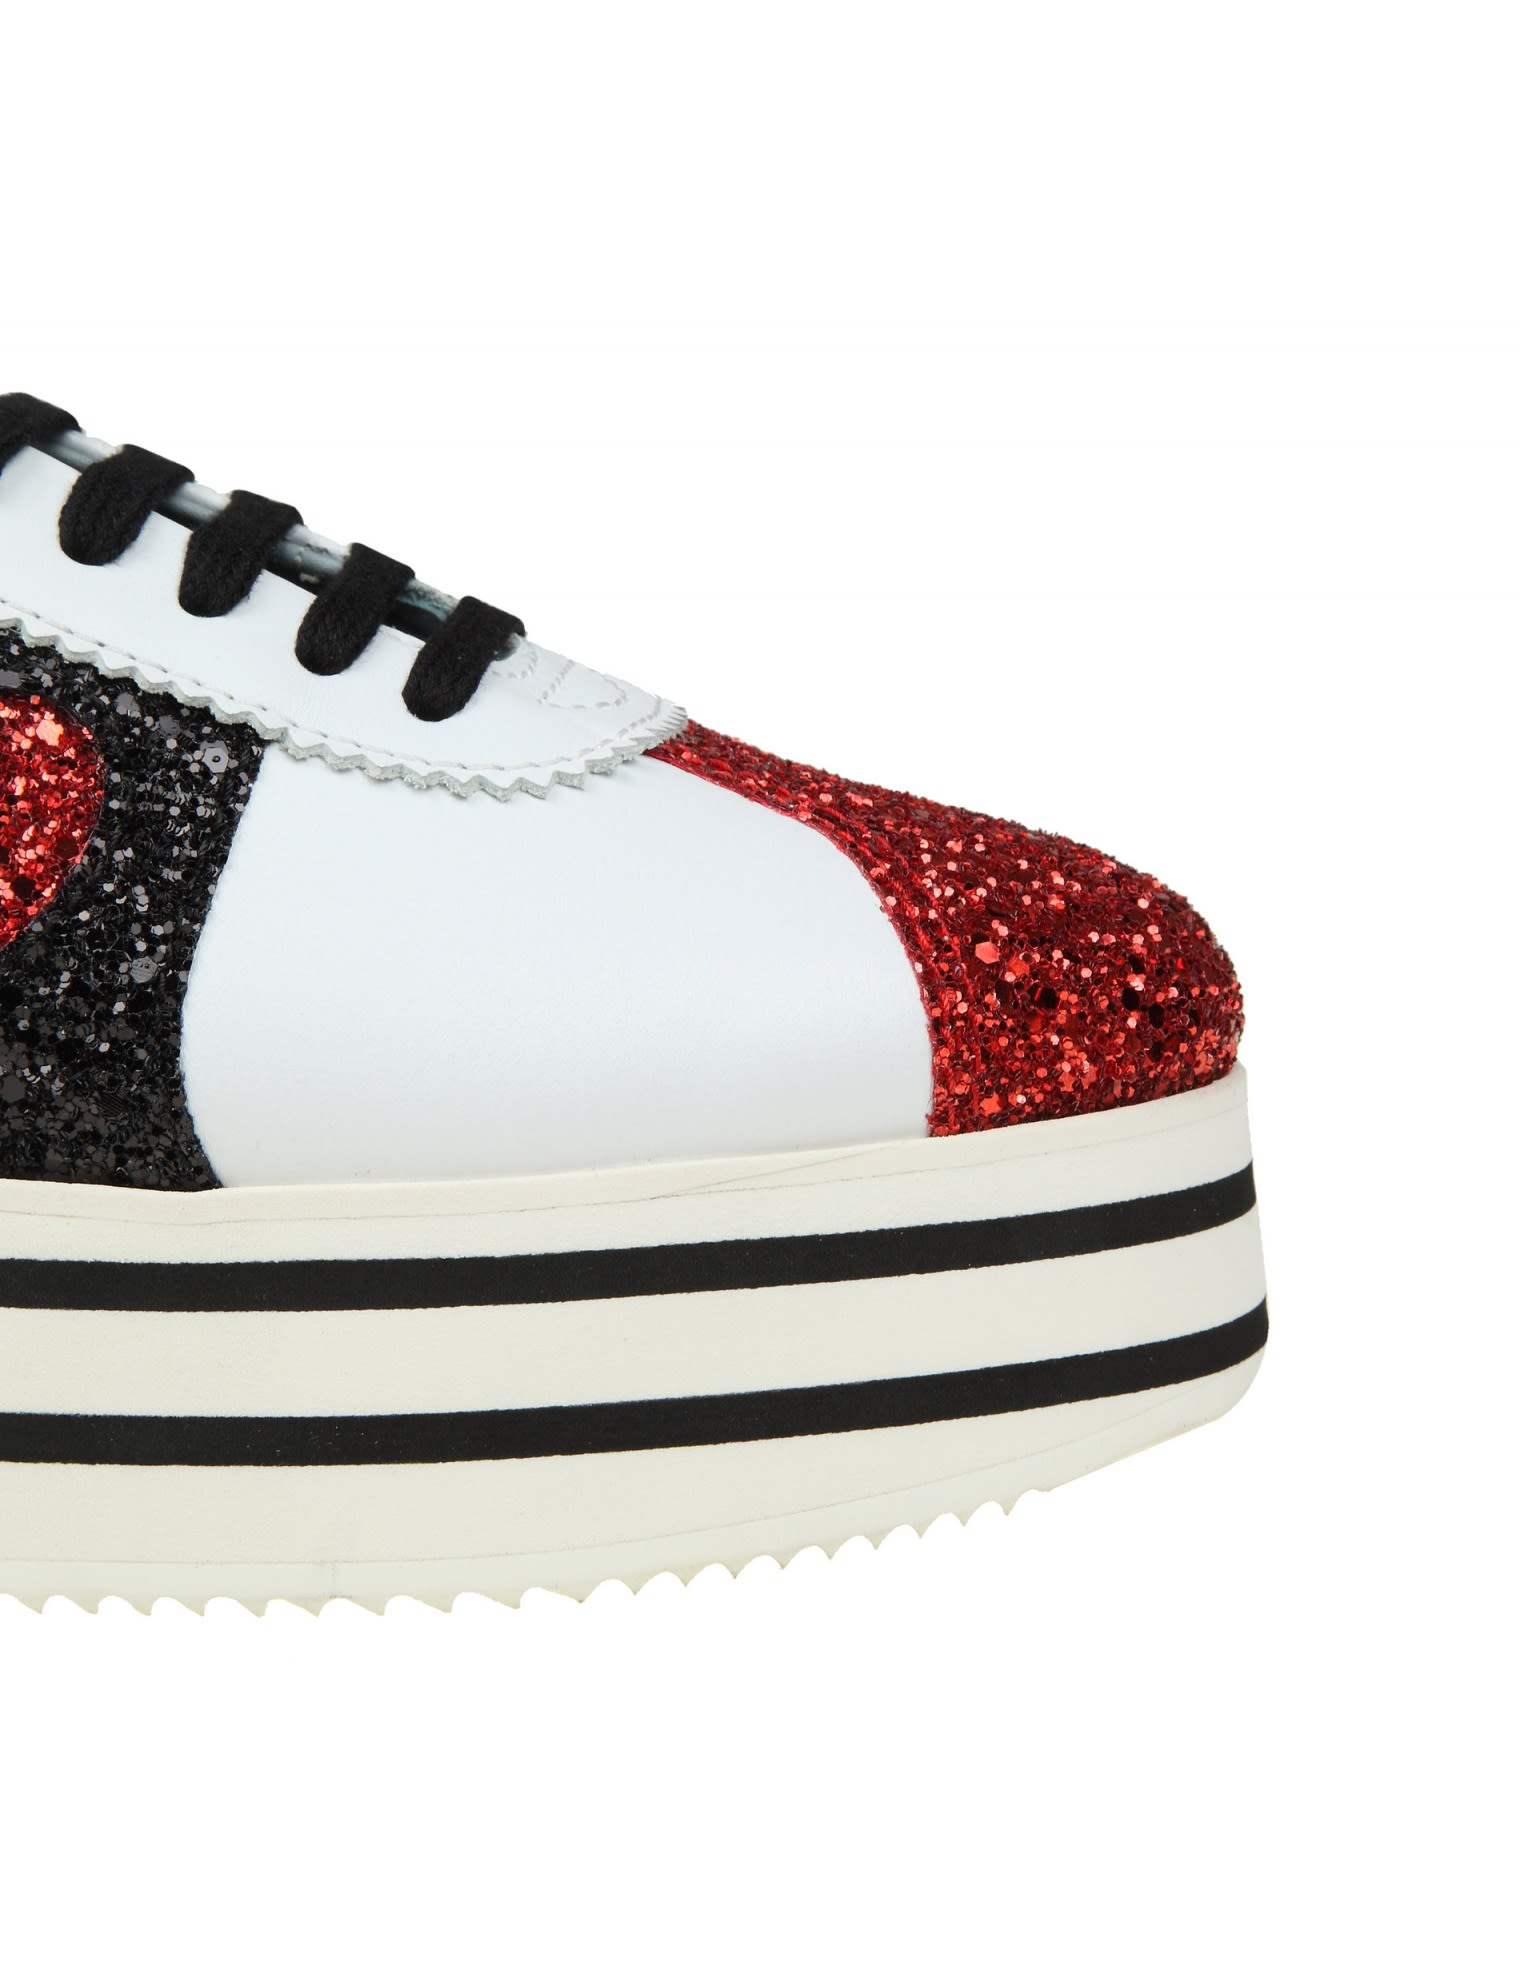 Chiara Ferragni Leather Sneakers With Glitter Applications Order Cheap Price Free Shipping Cheap Online aubiQMcP33